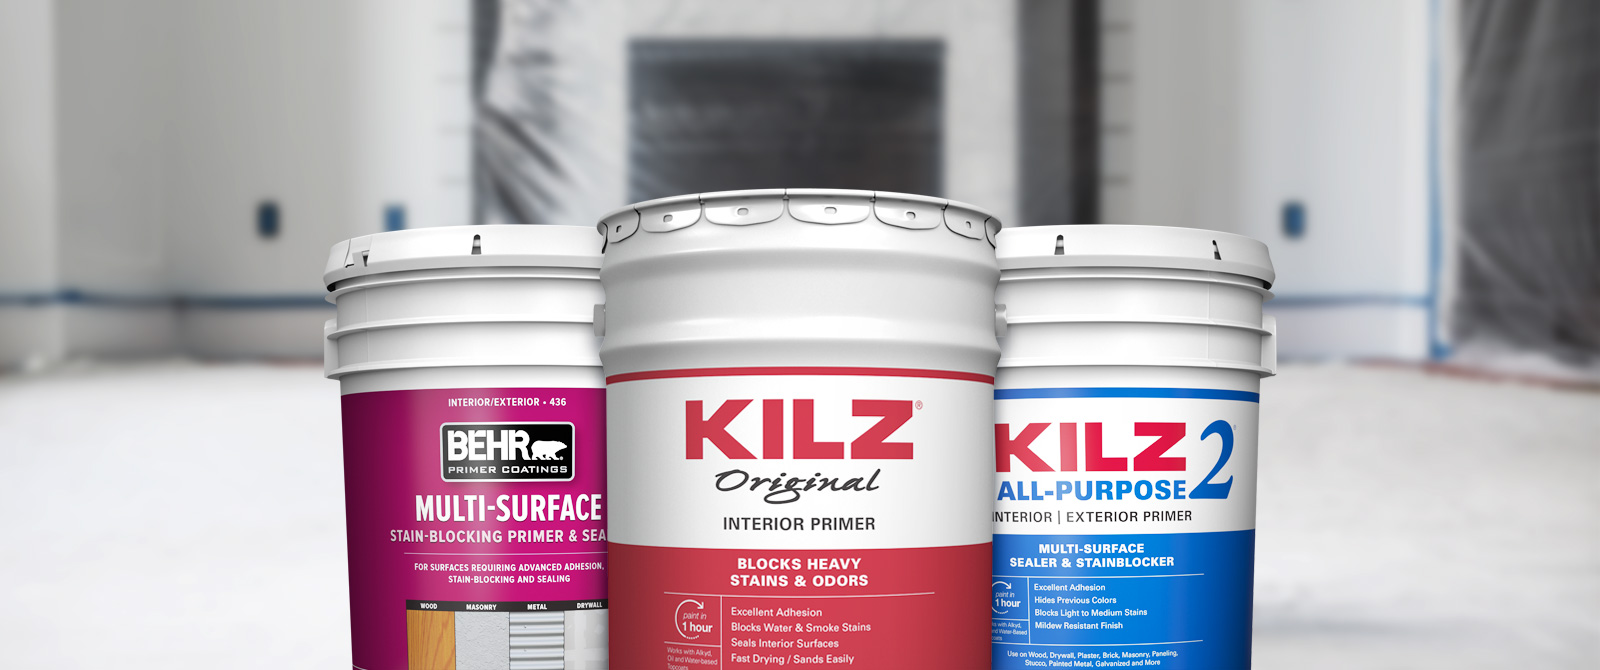 Behr Pro interior primer products landing page desktop image featuring 5 gallon cans.